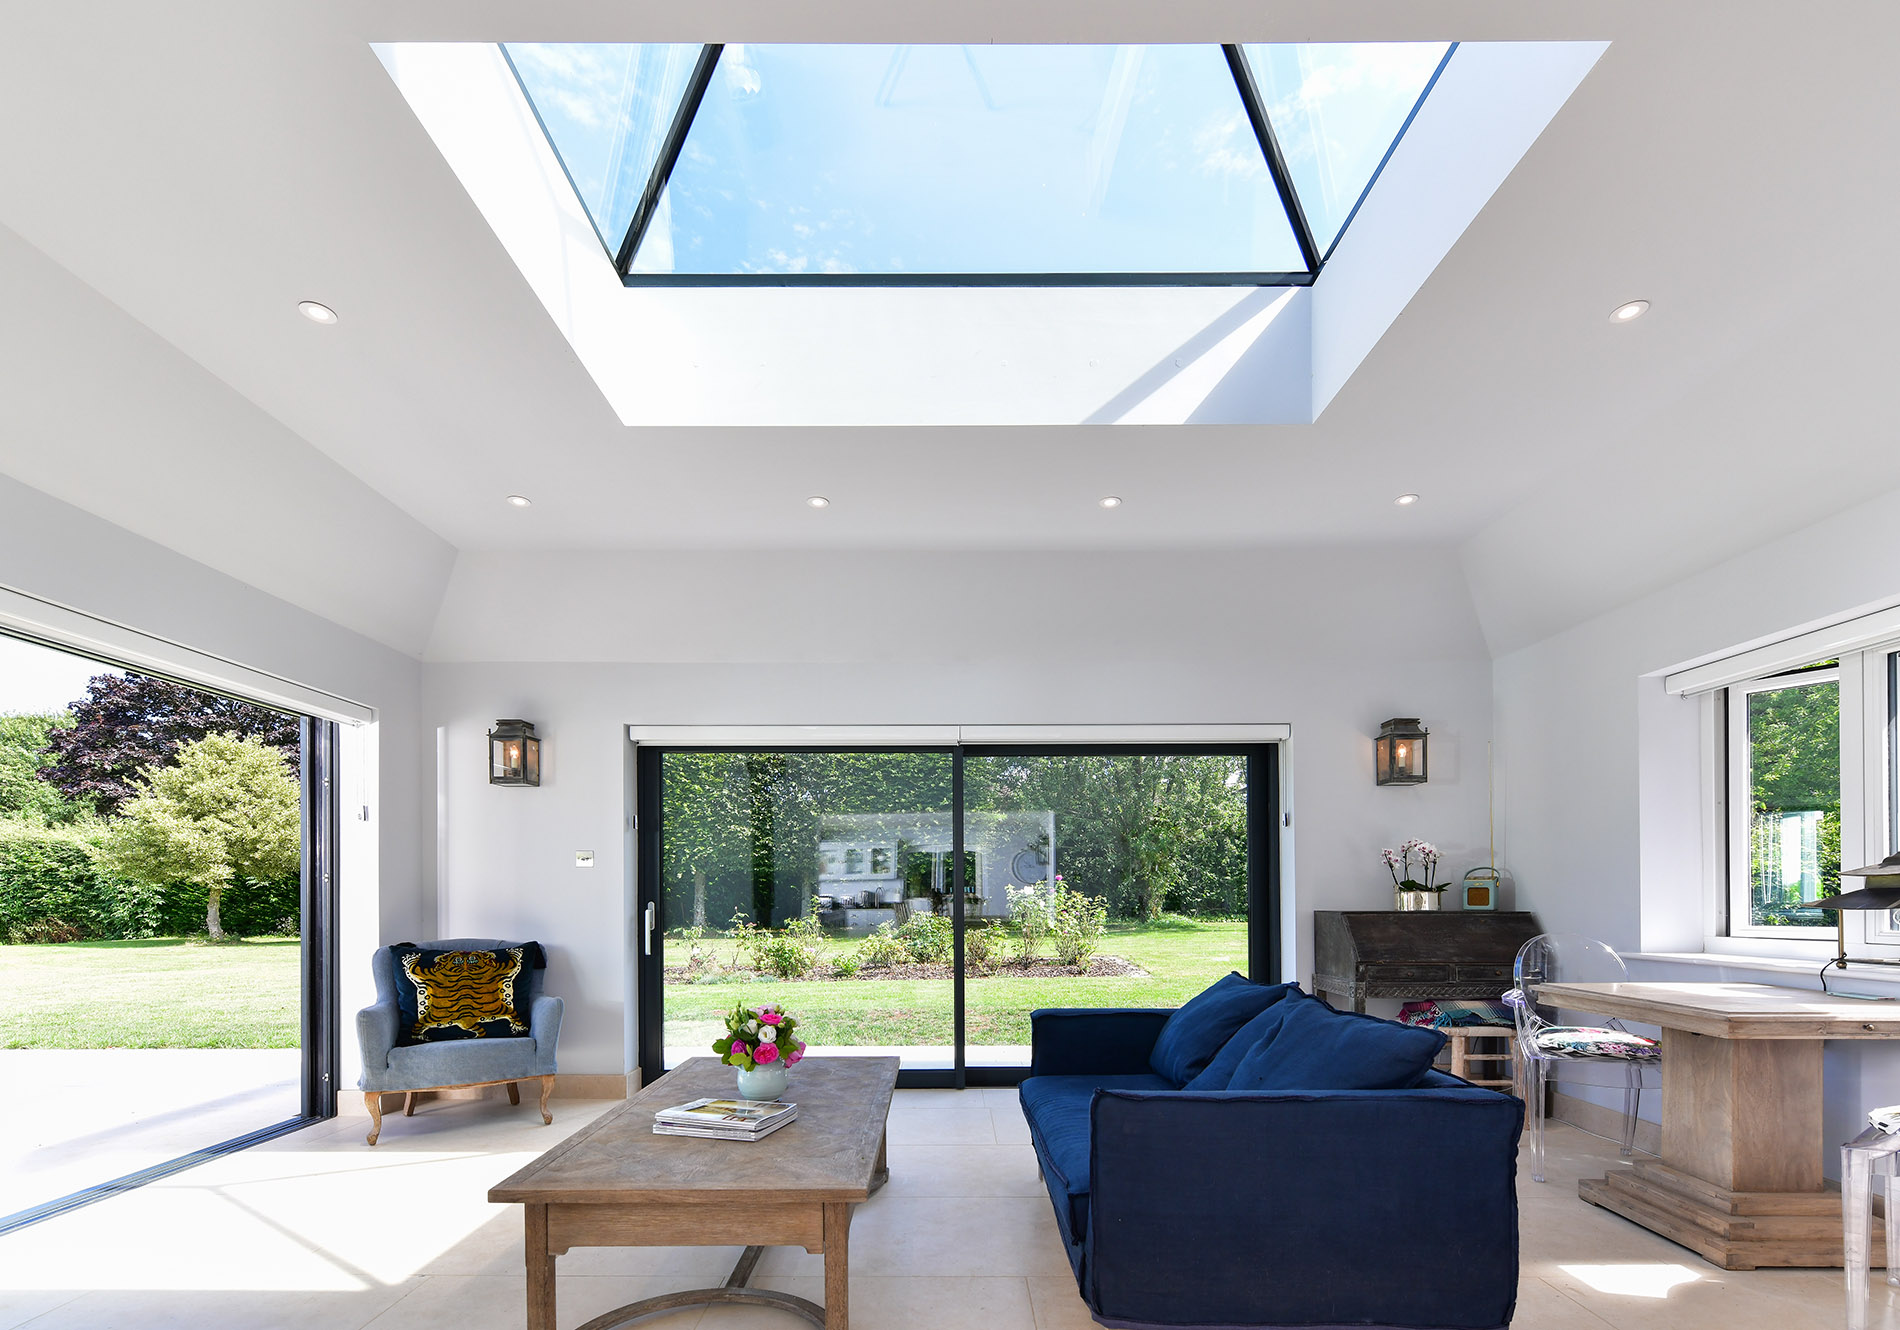 combining glide s slidng doors with a pure glass roof lantern and residence 7 windows on a rear extension